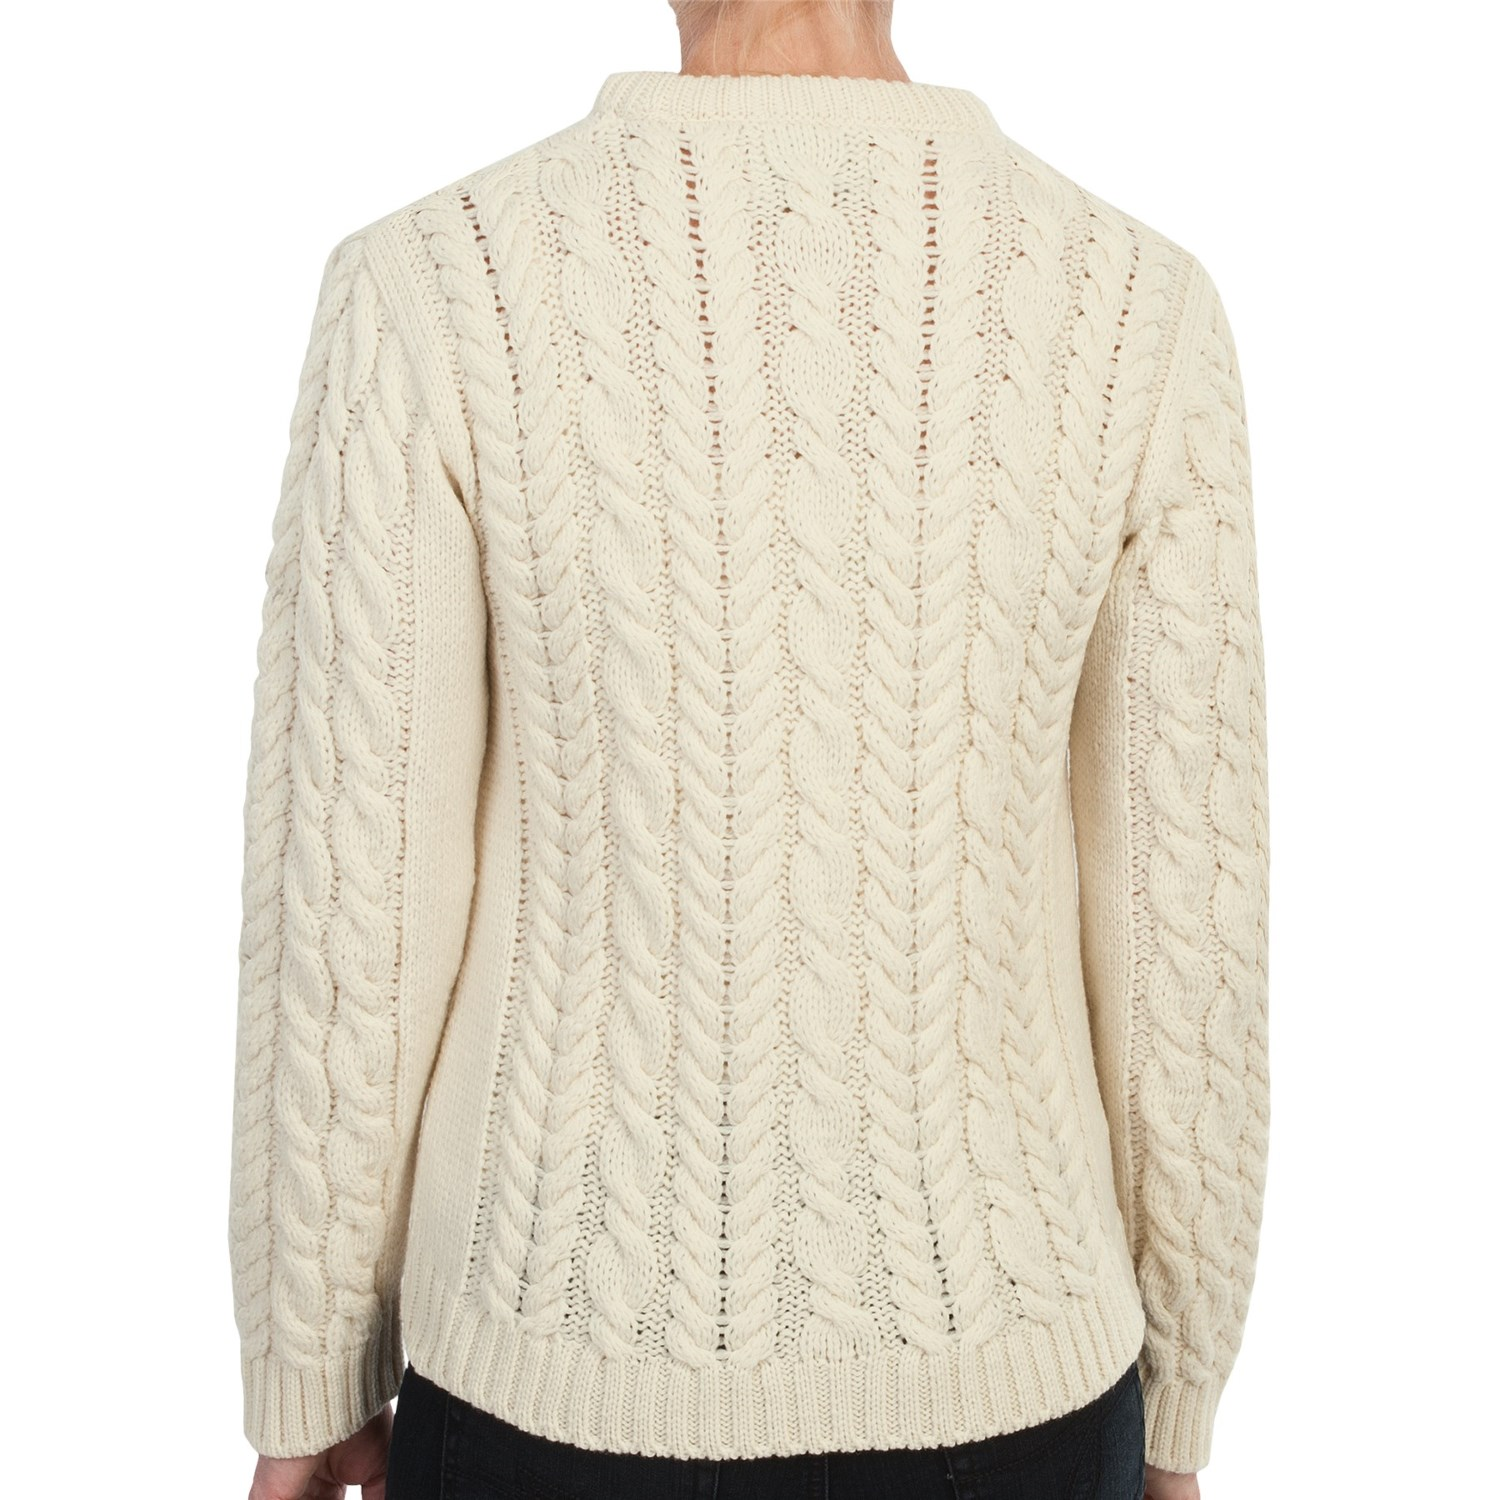 Sweater Knit : Peregrine by j g glover aran cable knit sweater for